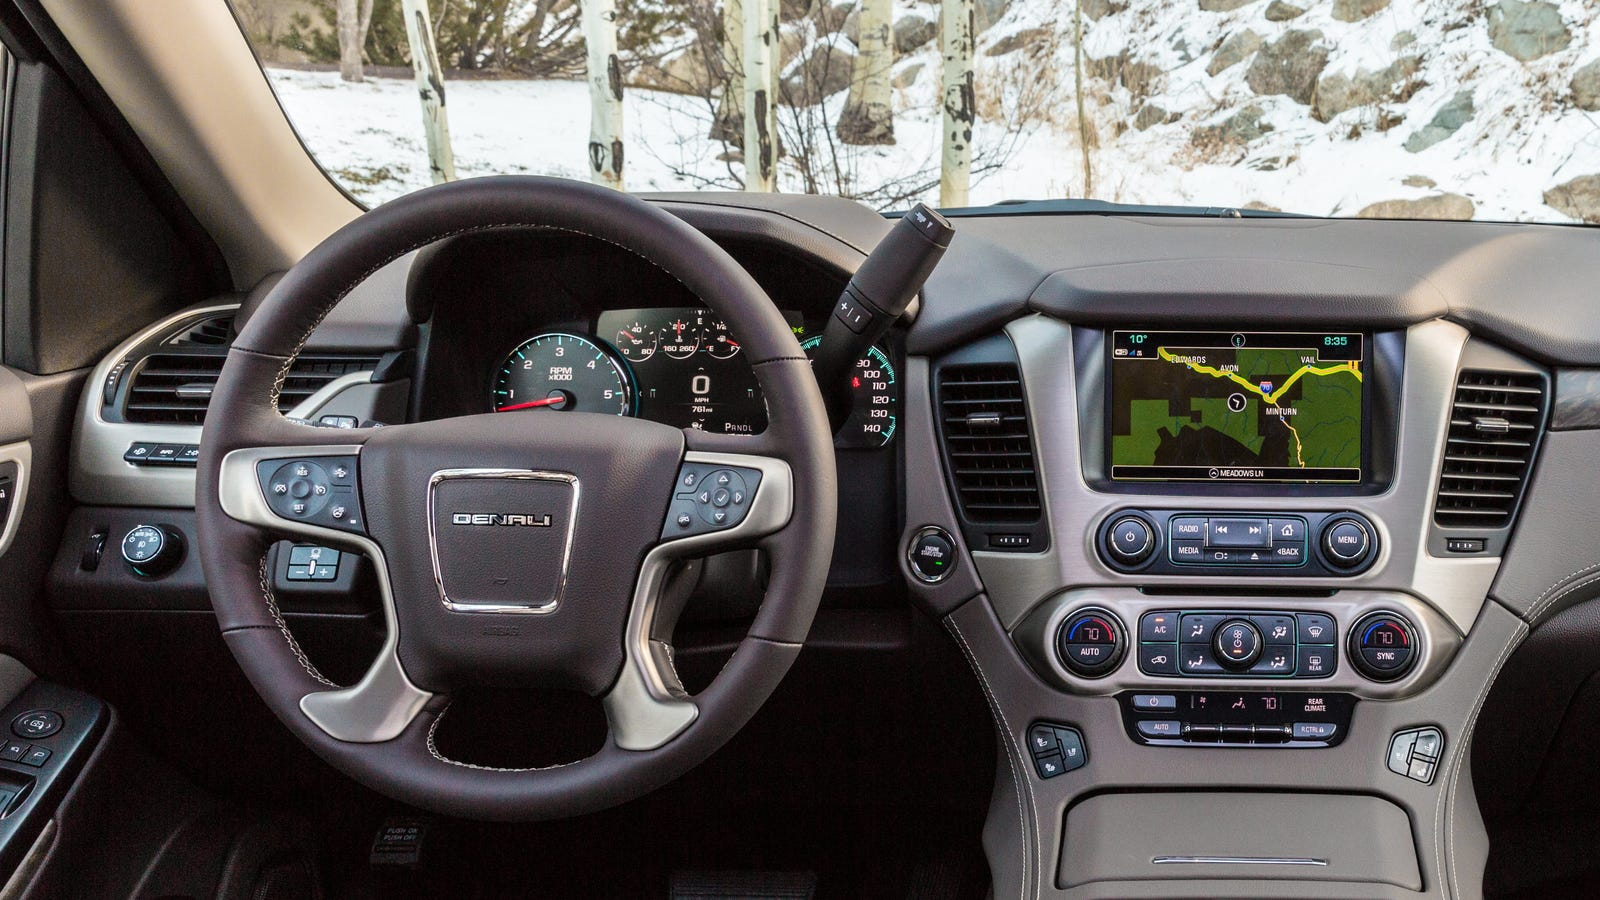 GM Collected Radio-Listening Data on 90,000 Cars